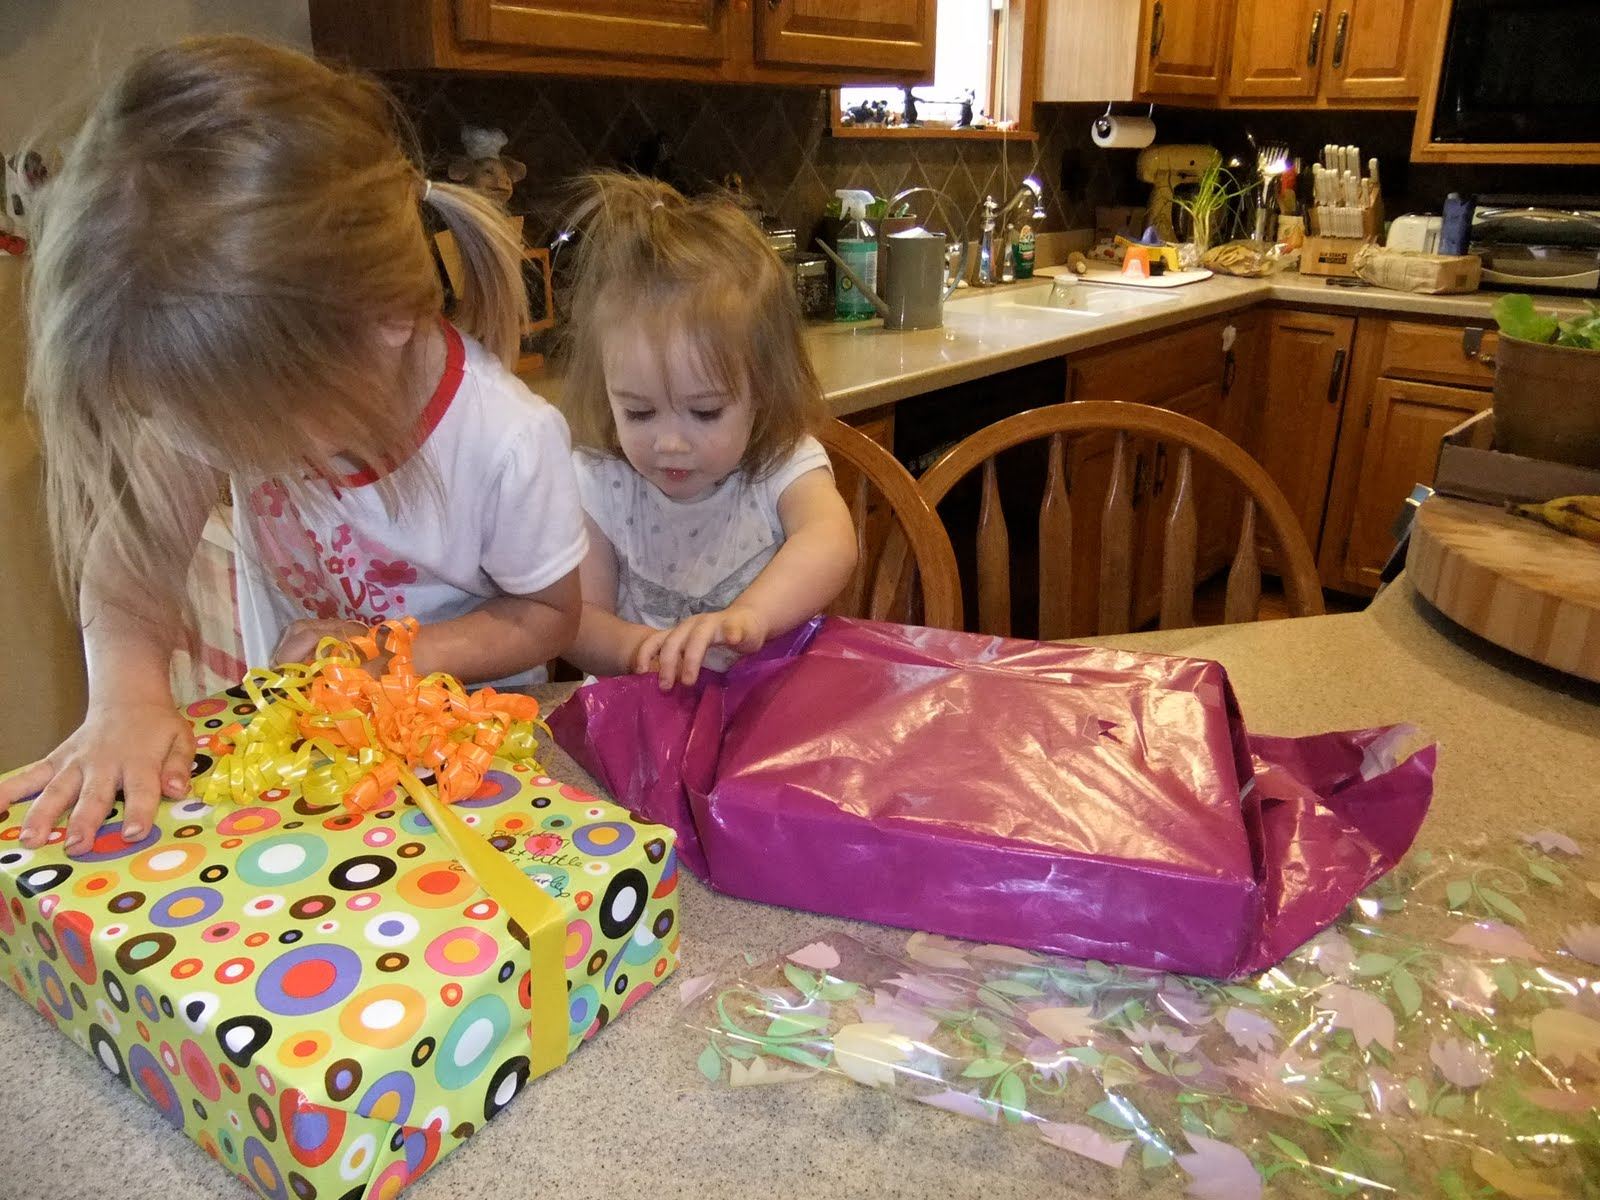 Rosabelope: Birthday bonanza arrives in the mail from the Hatleys!